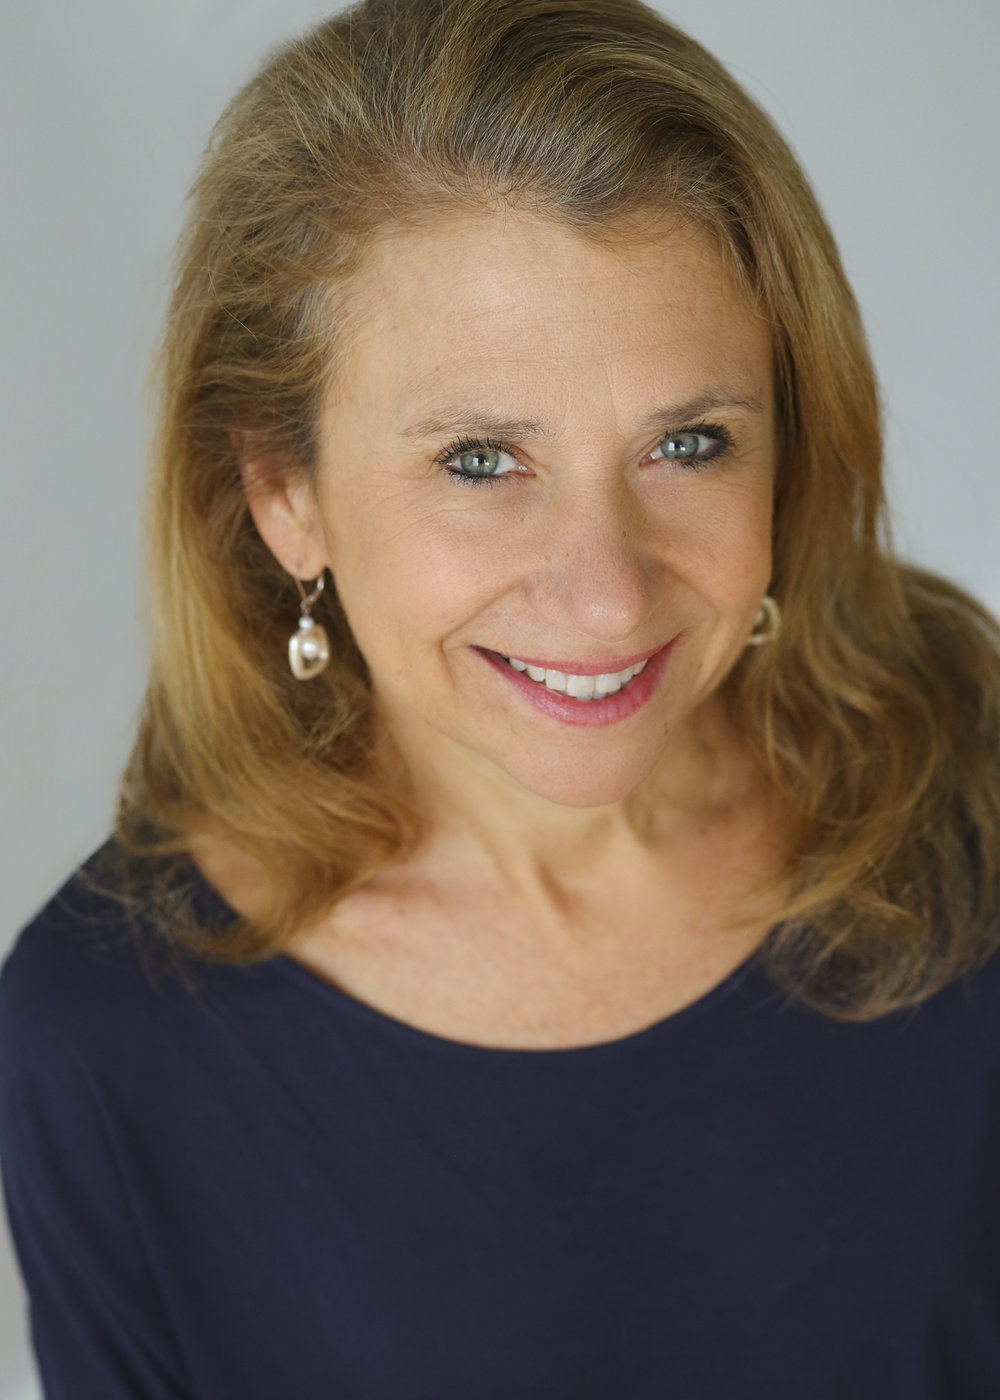 Susan Reynolds, Dartmouth '85 & Cofounder of Mindhood